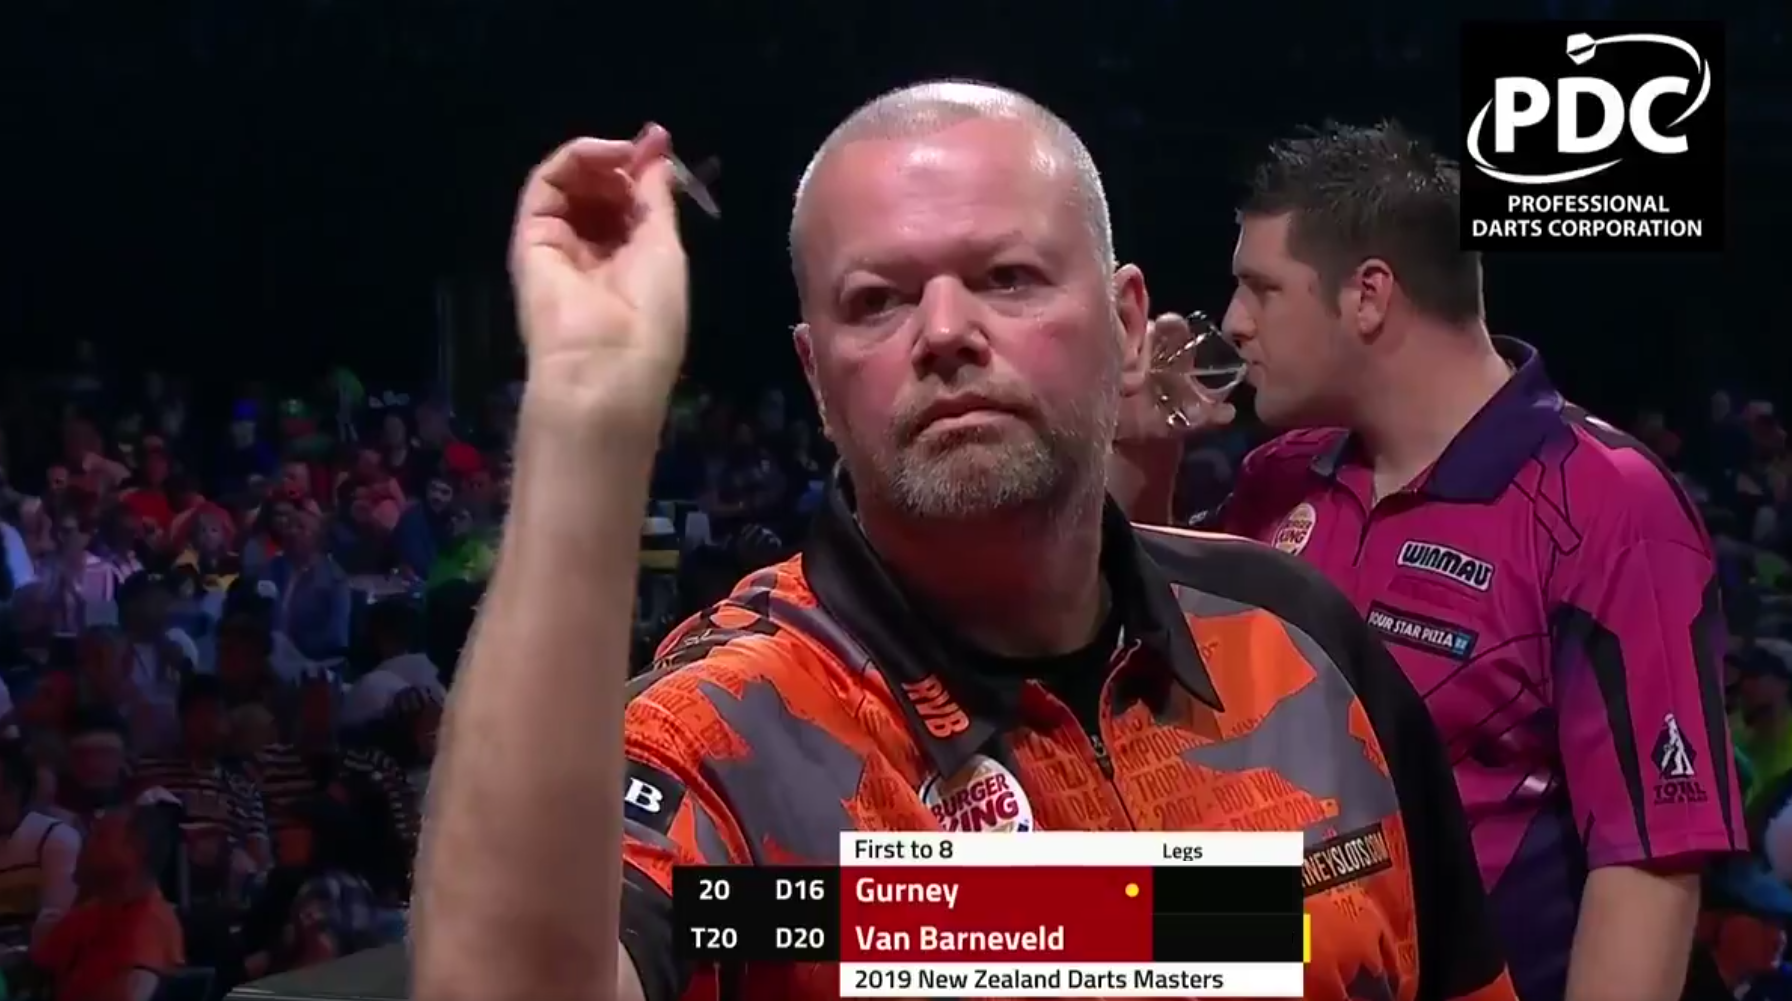 Watch Last Darts Van Barneveld v Gurney At New Zealand Darts Masters